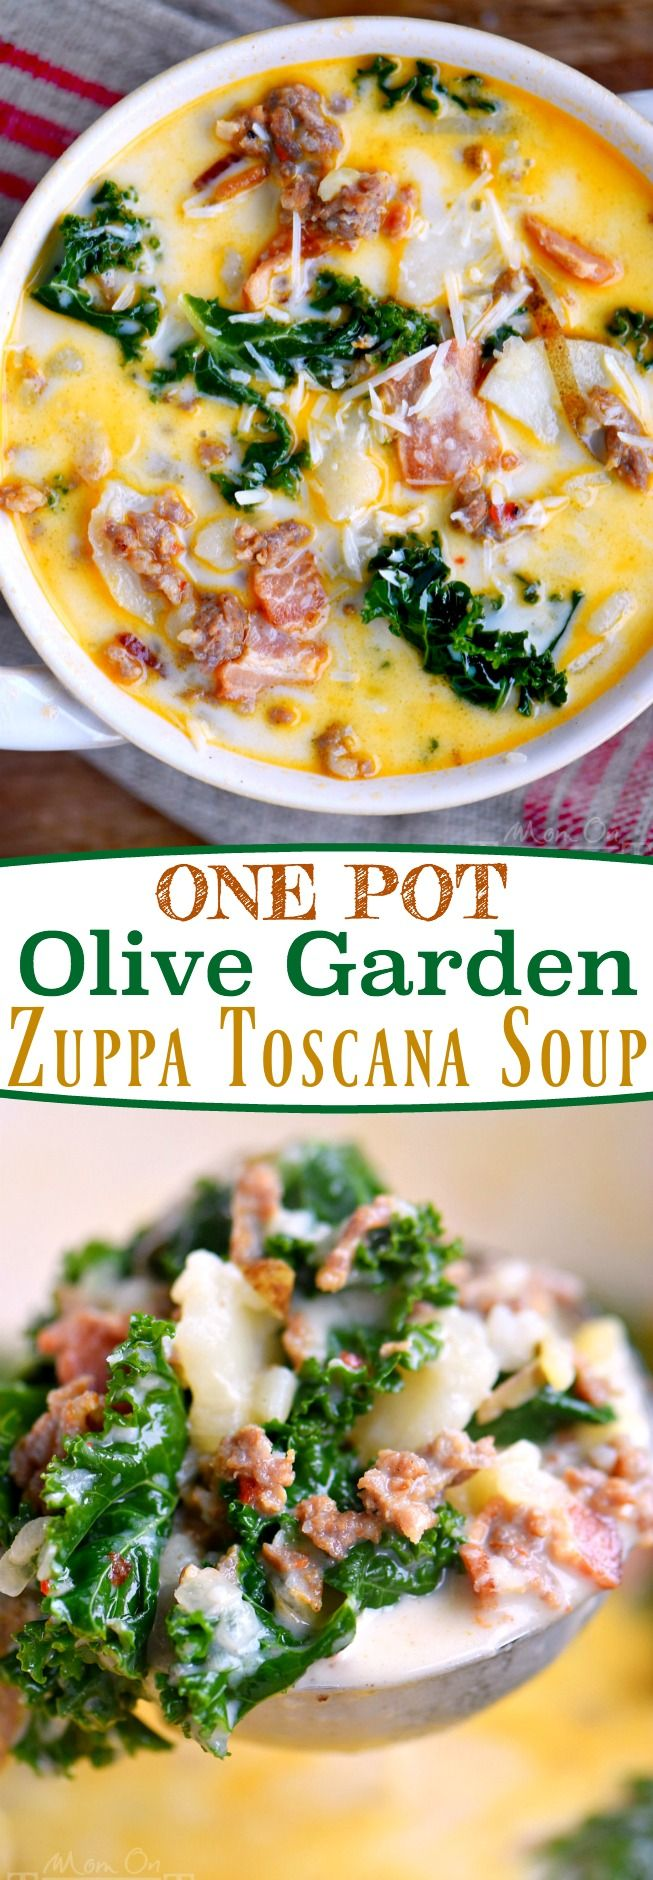 The whole family will love this copycat One Pot Olive